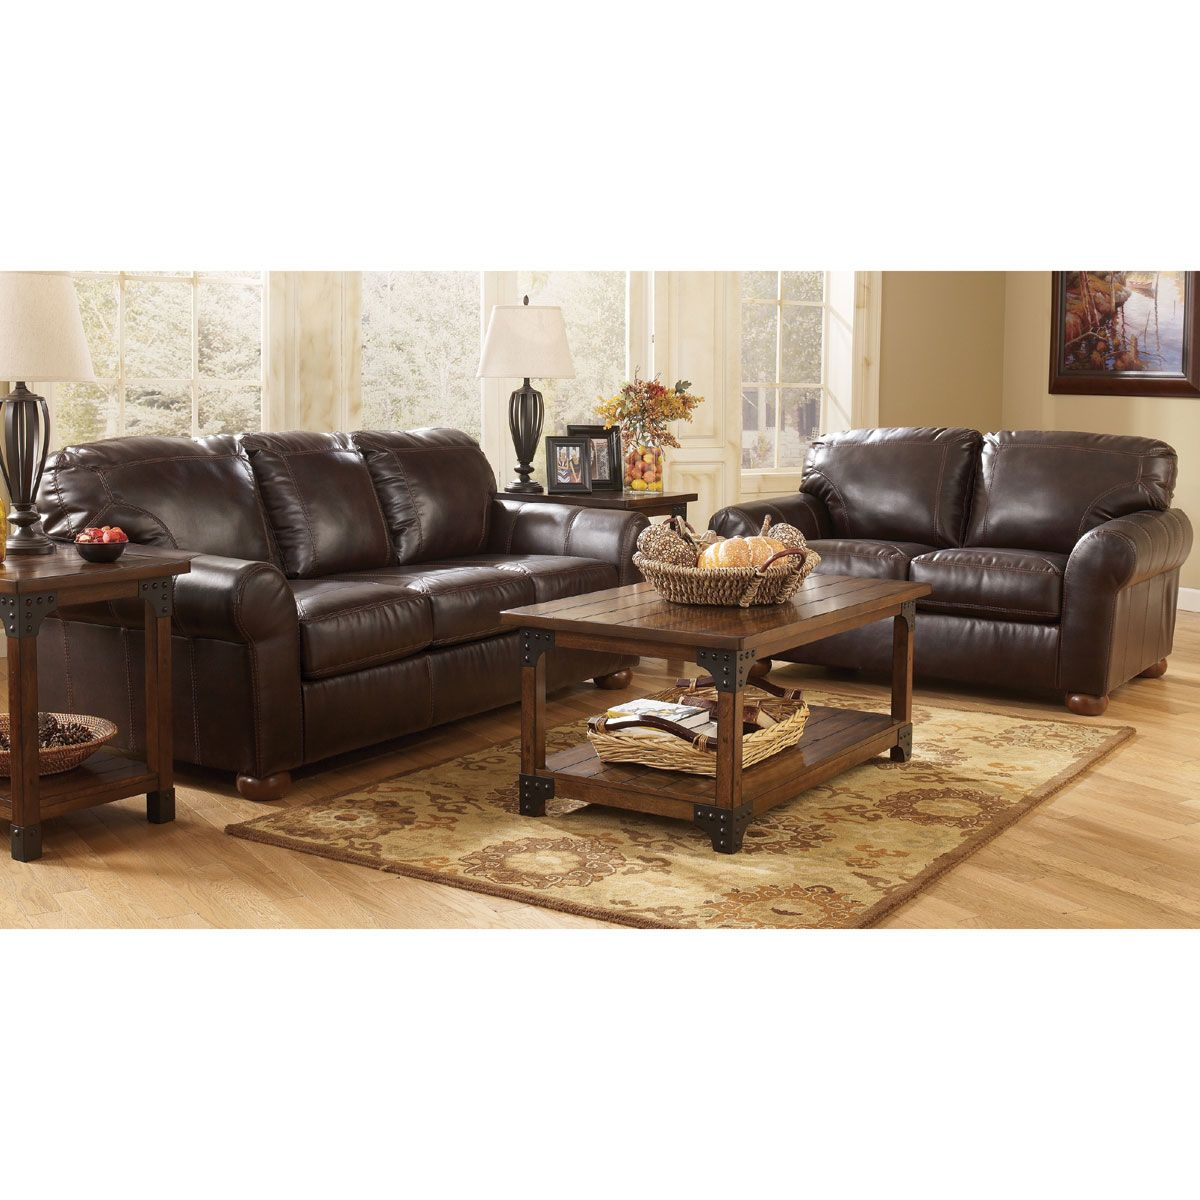 Brown upholstered 2 piece room group in 2019 living room - Brown suede living room furniture ...